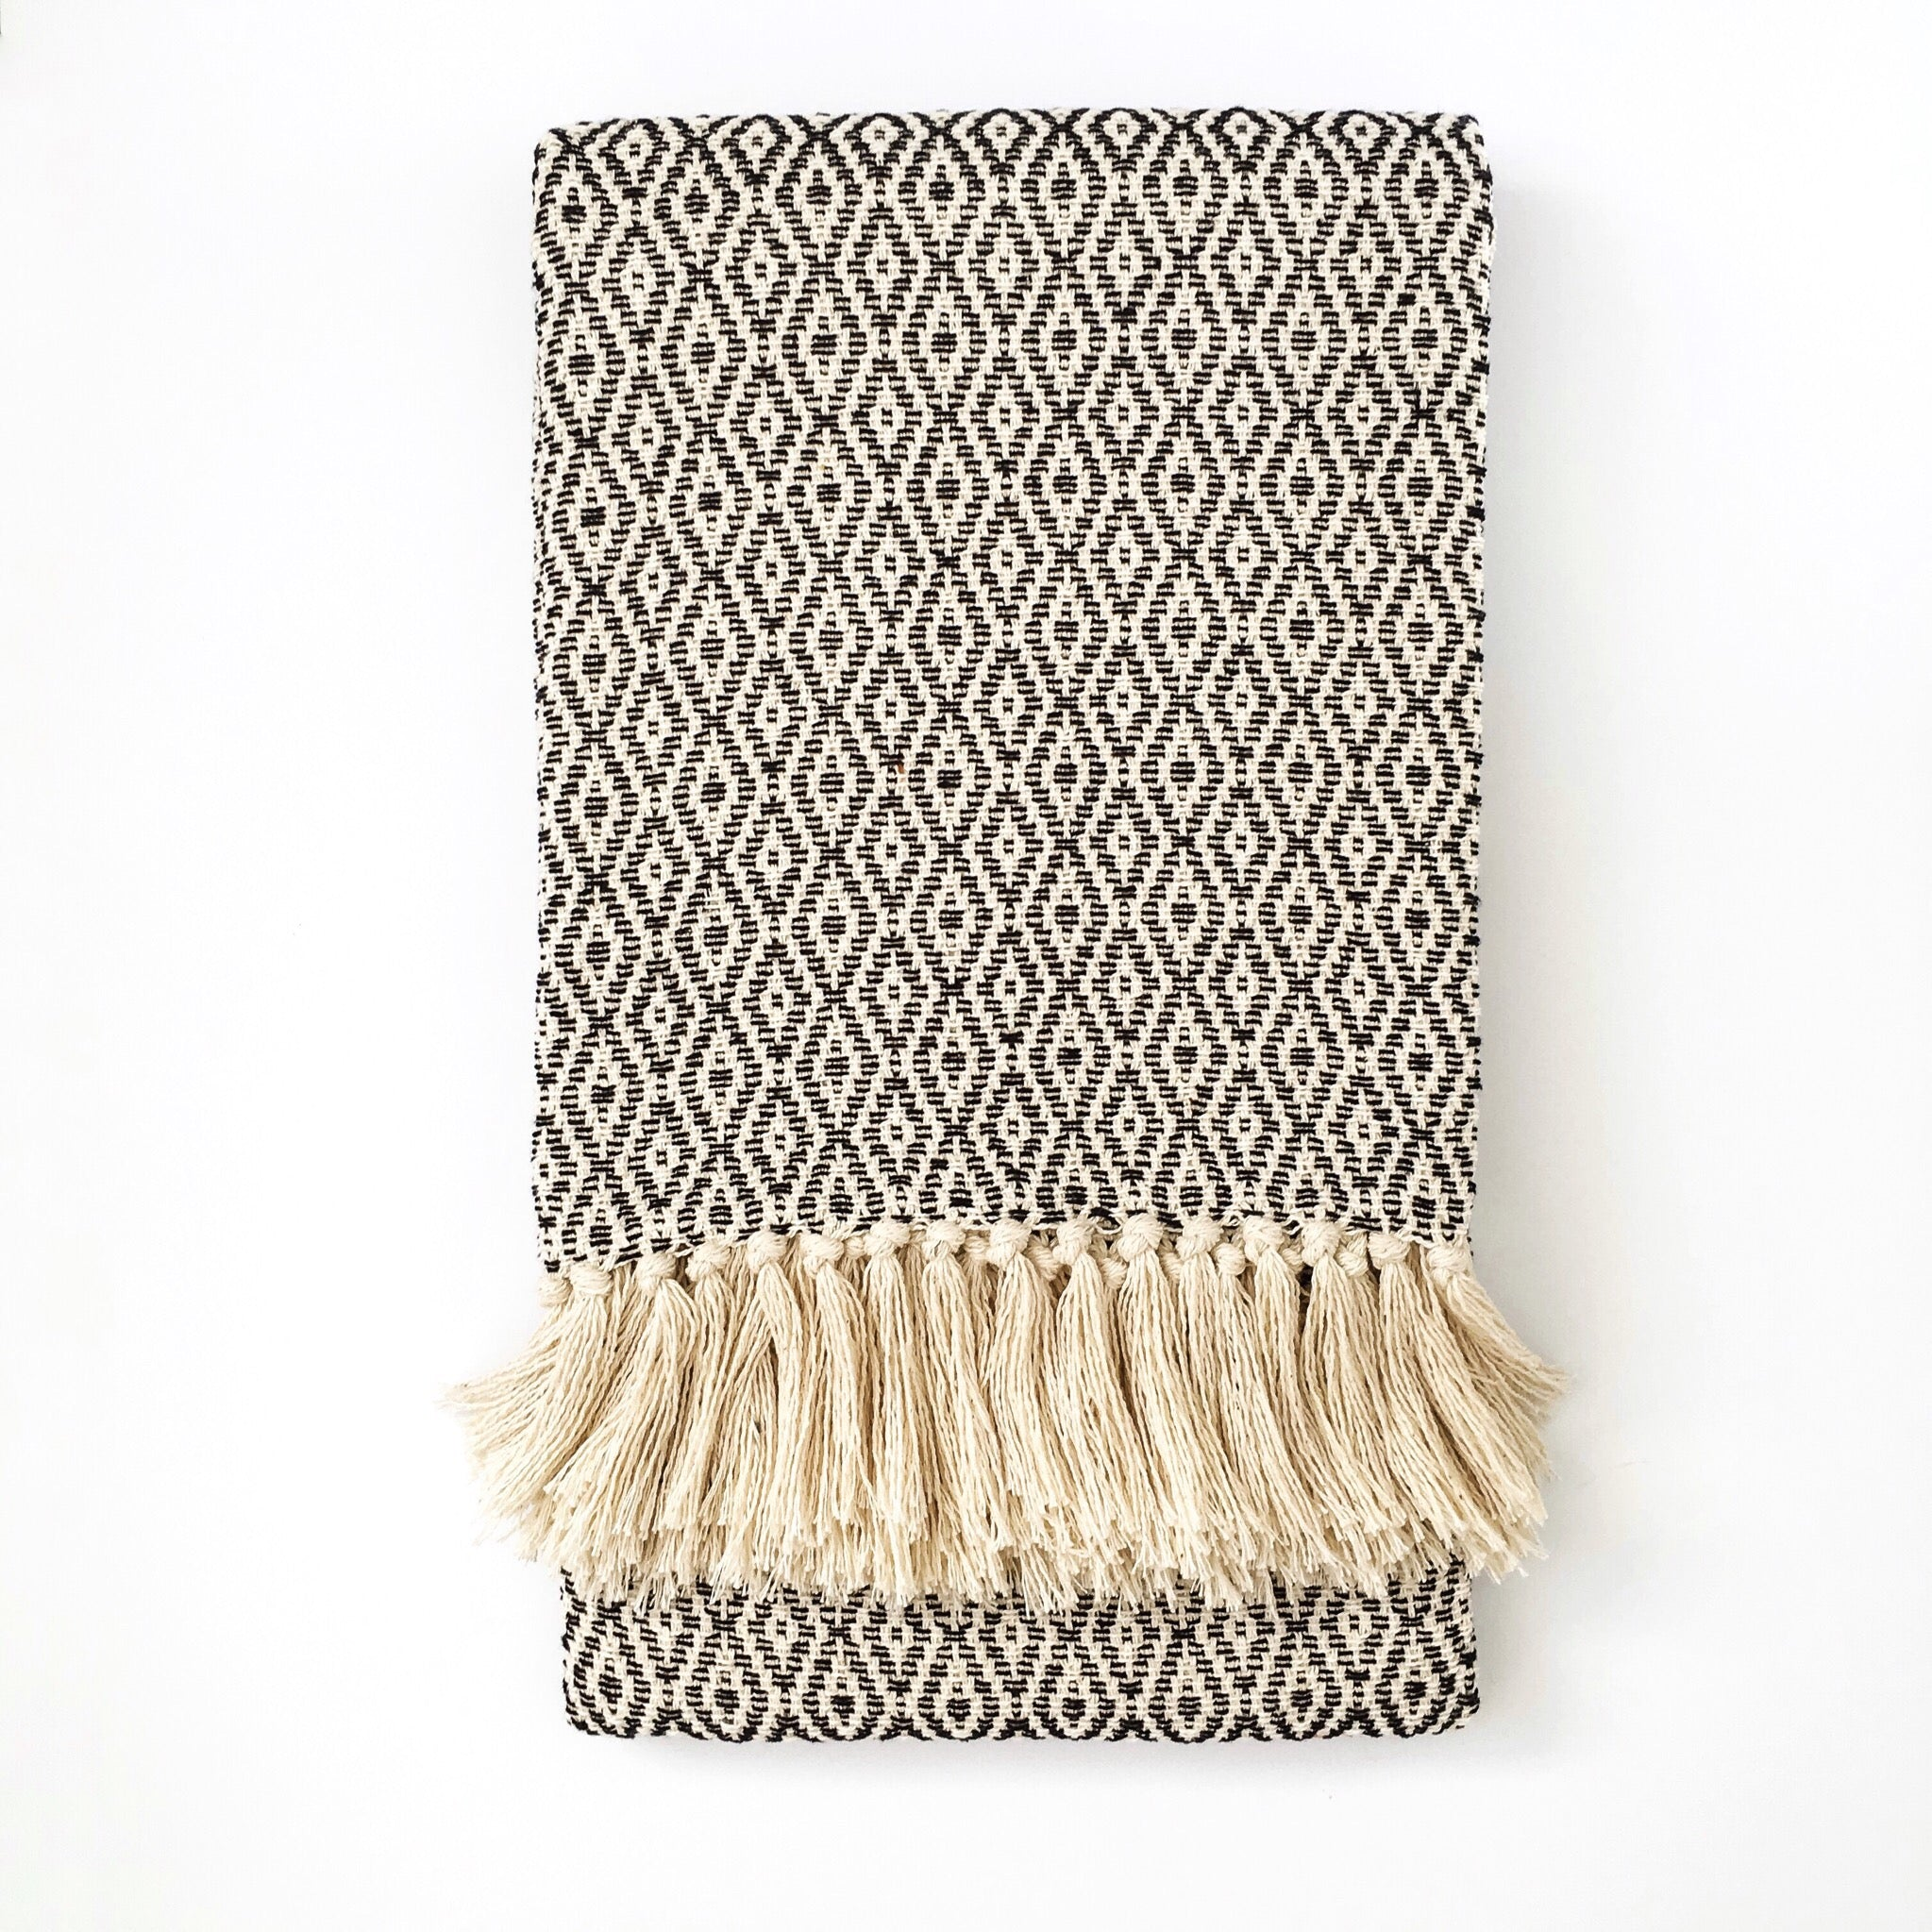 Casa Cubista Throw - Black & Natural Fringed